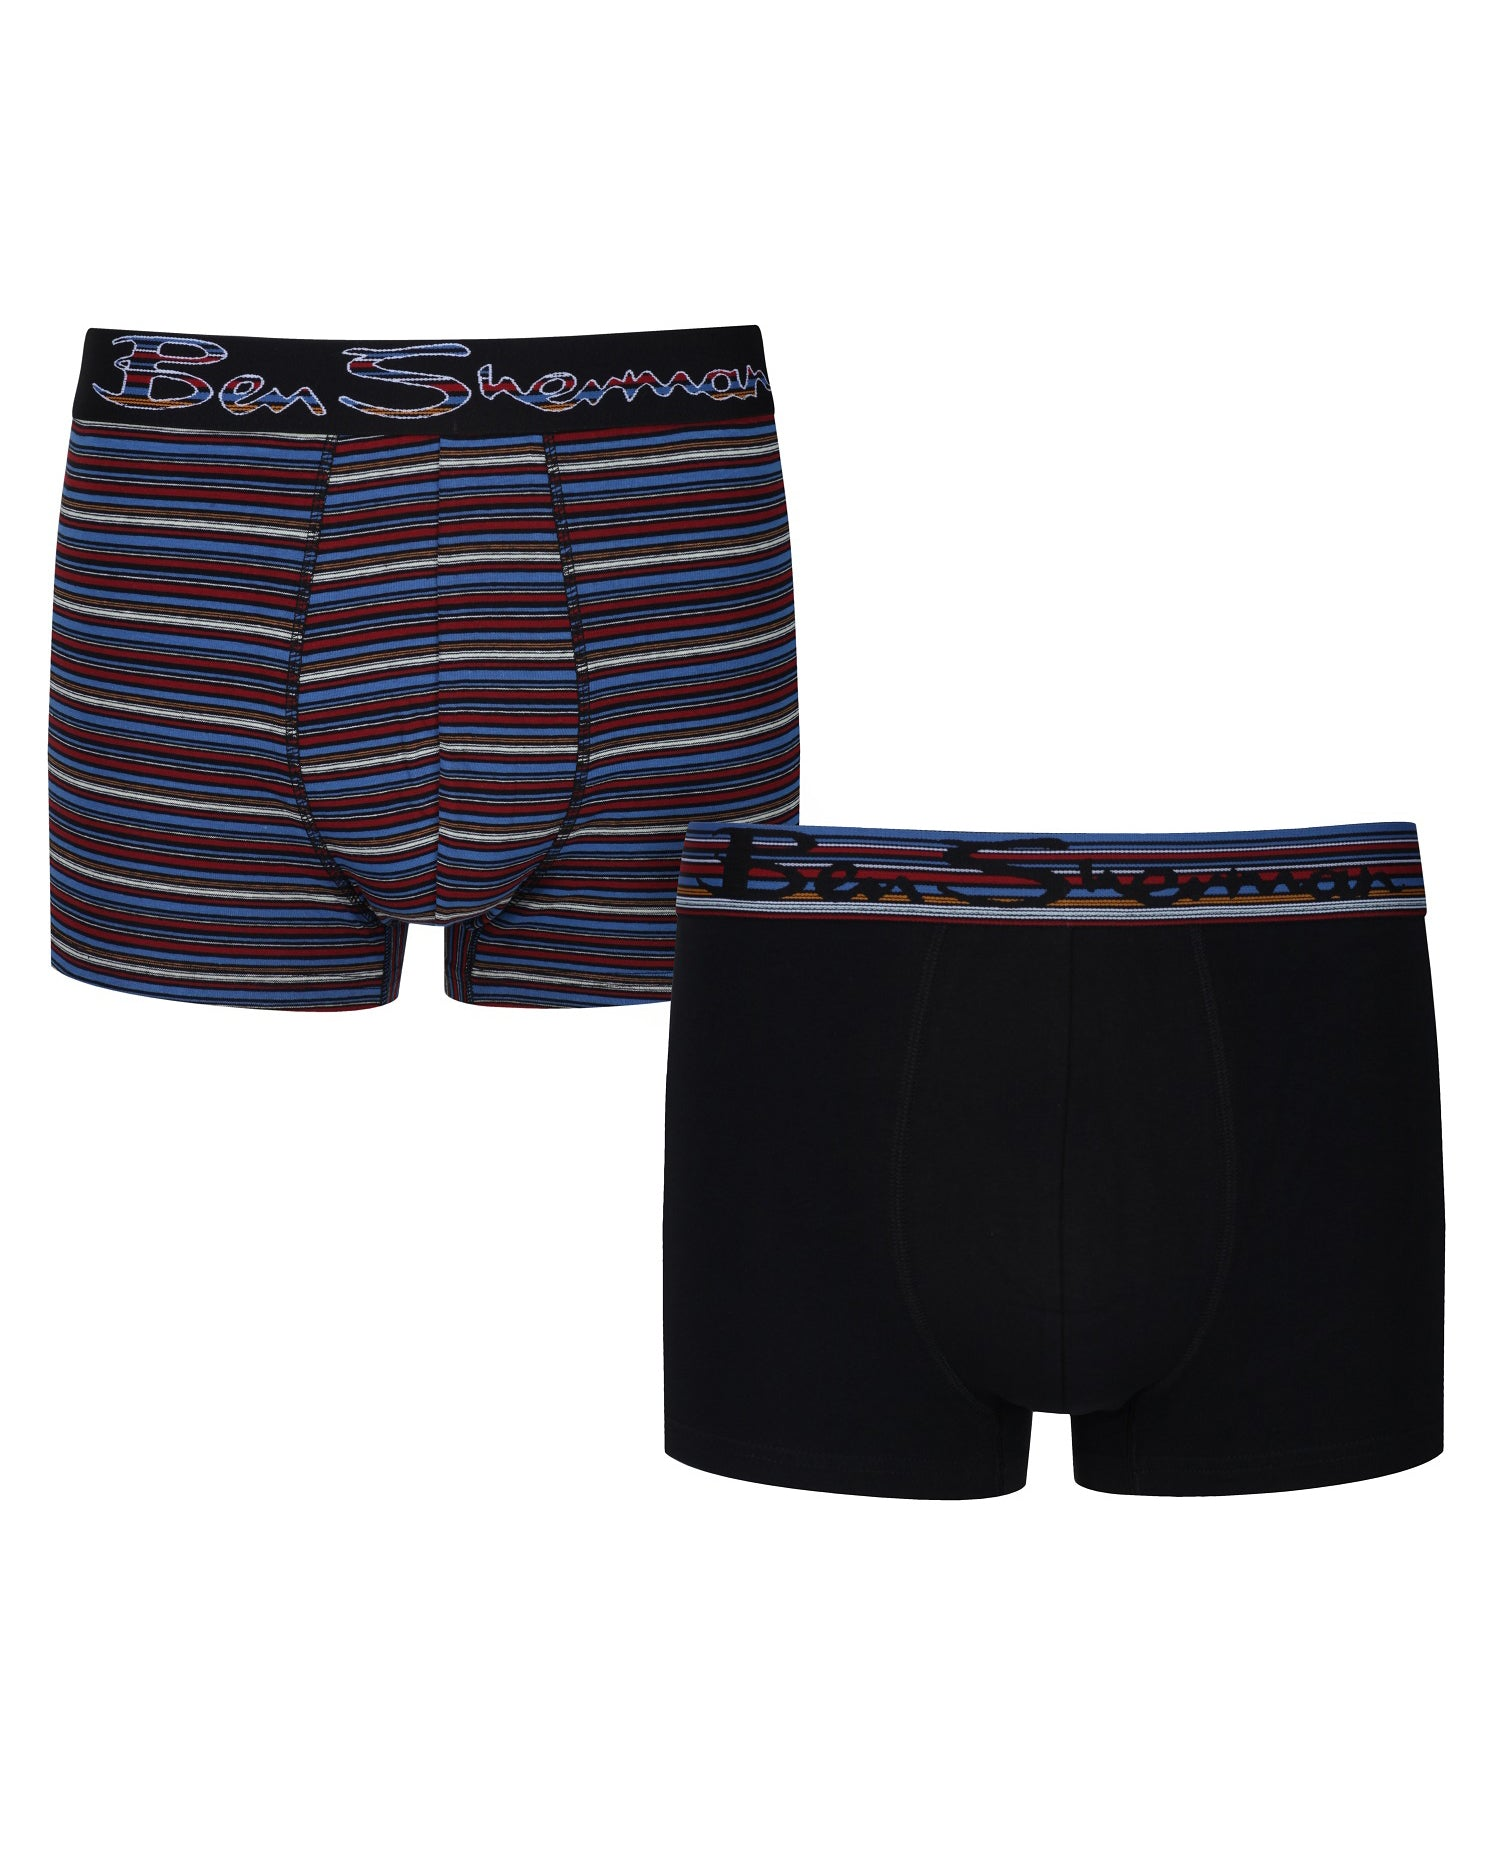 Gib Men's 2-Pack Fitted No-Fly Boxer-Briefs - Black/Multi Stripe